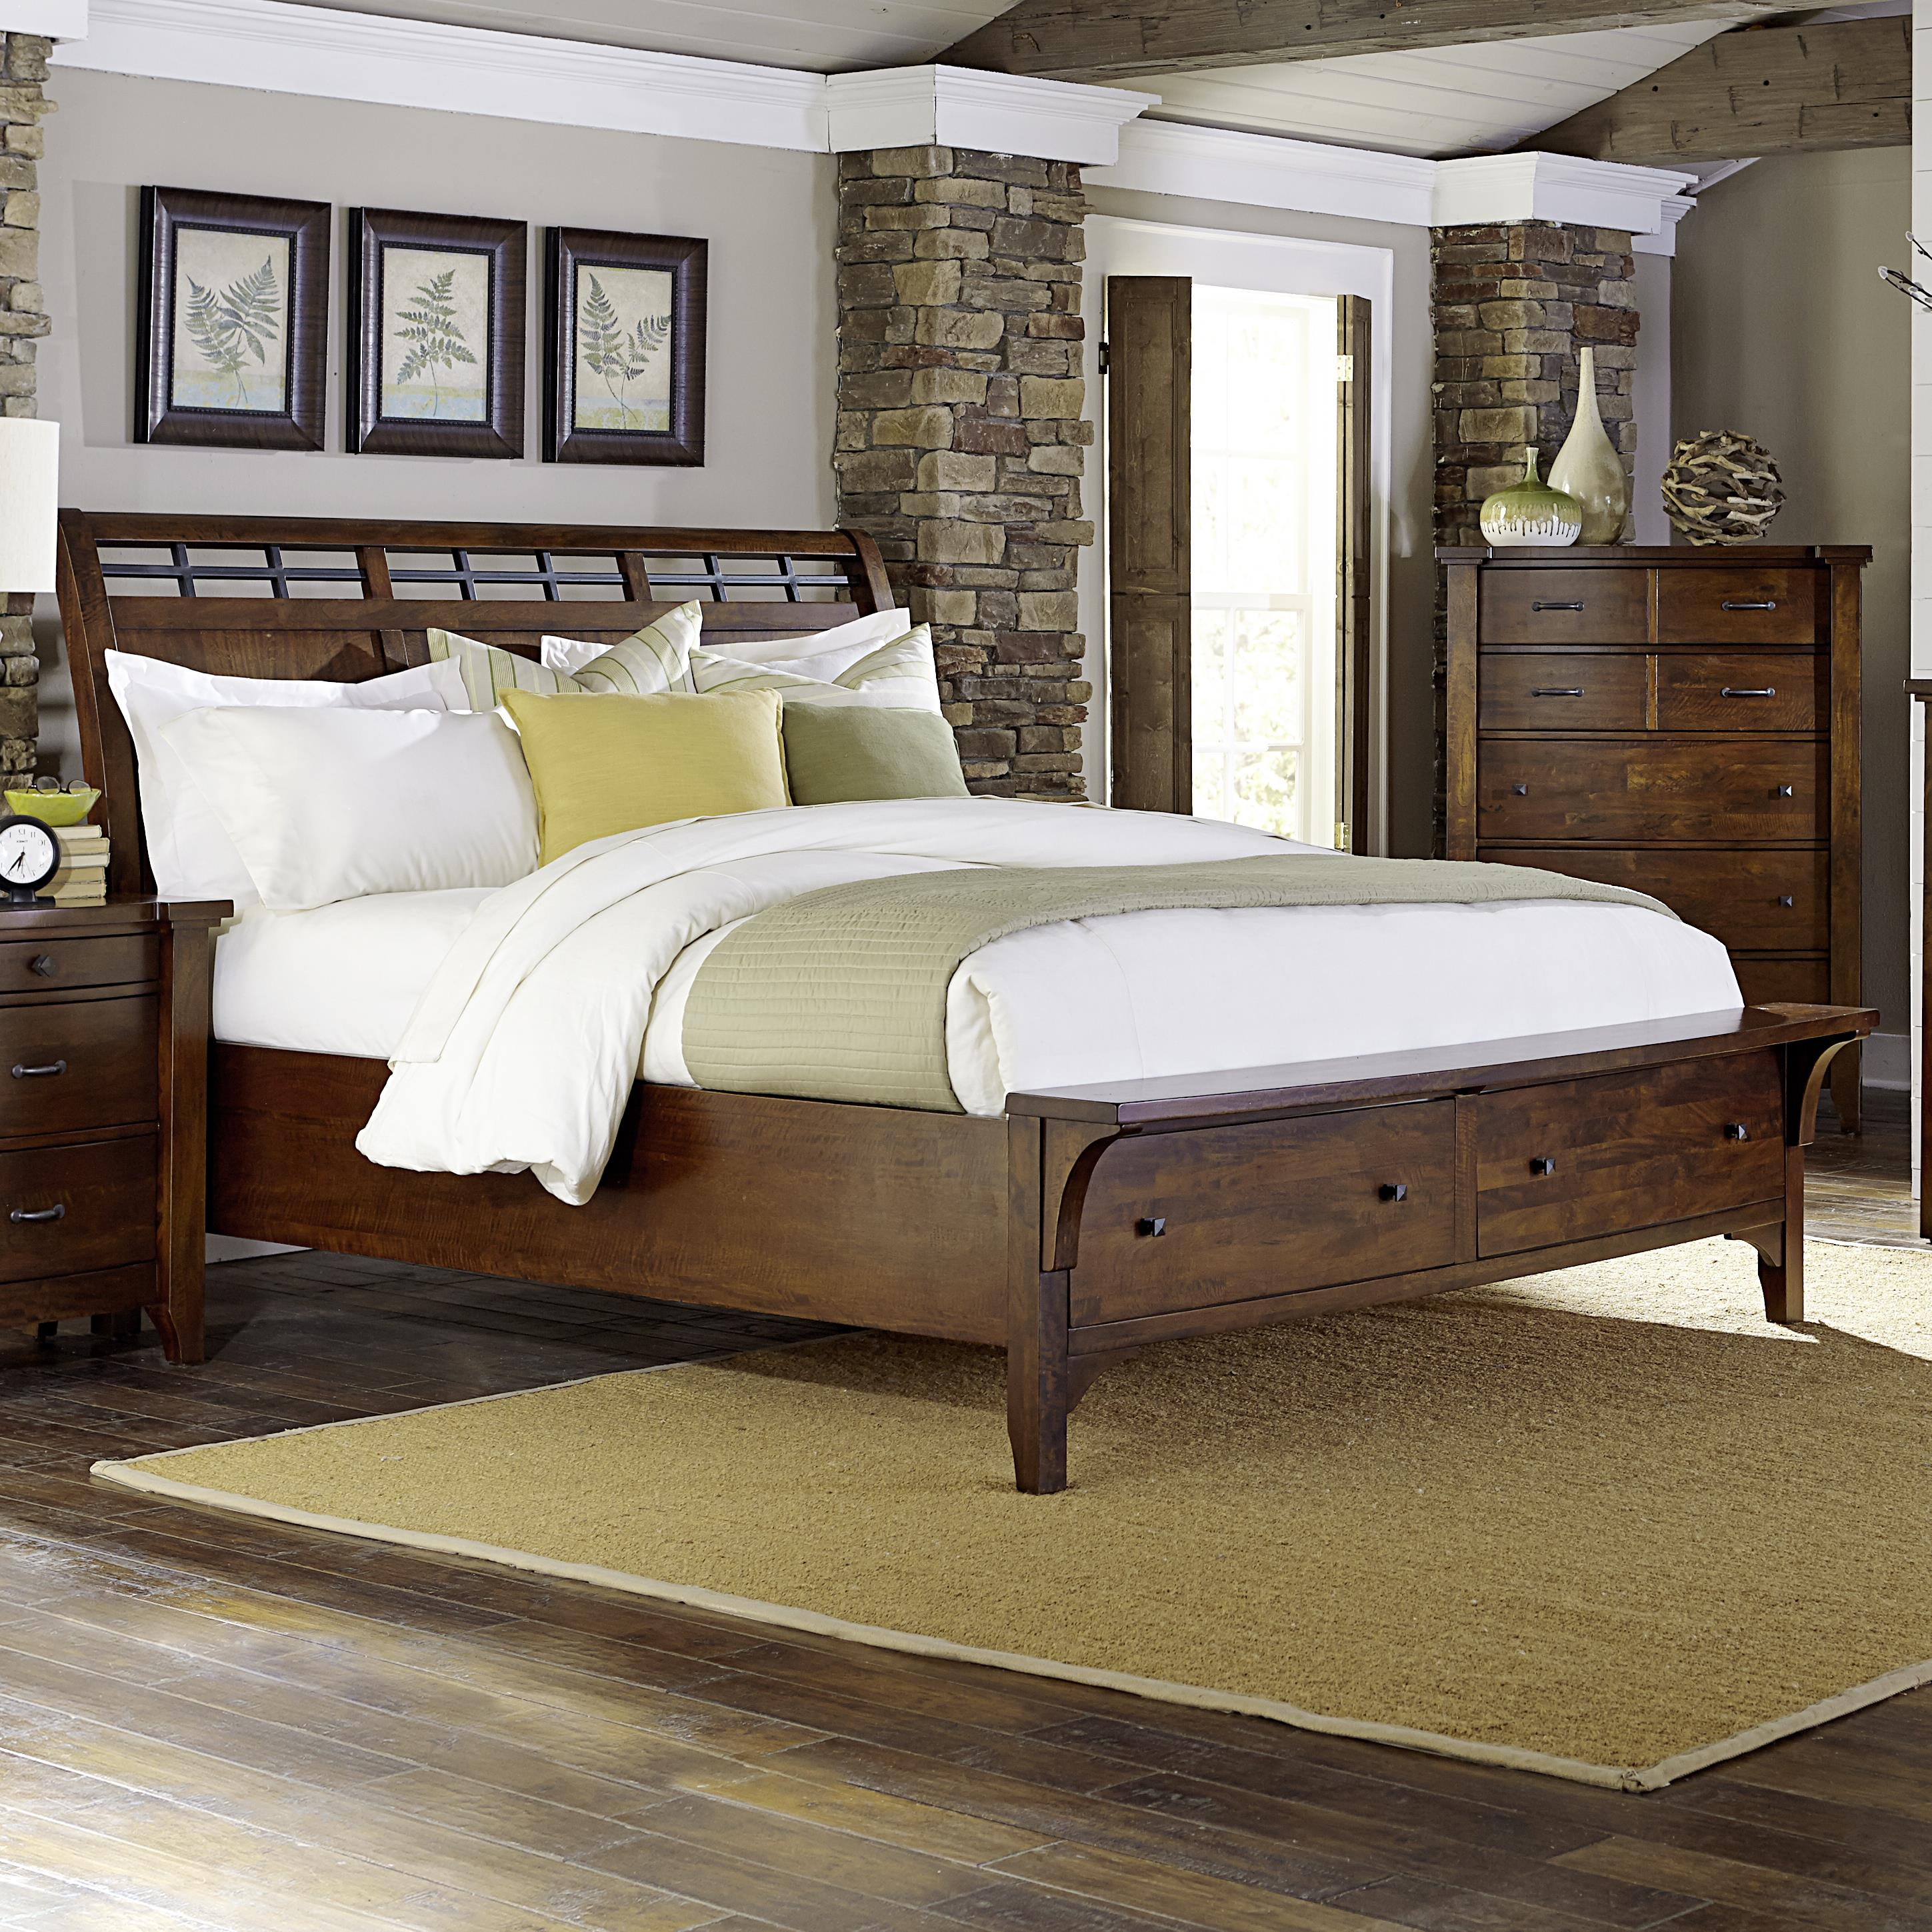 Whistler Retreat California King Storage Bed by Napa Furniture Designs at Beck's Furniture